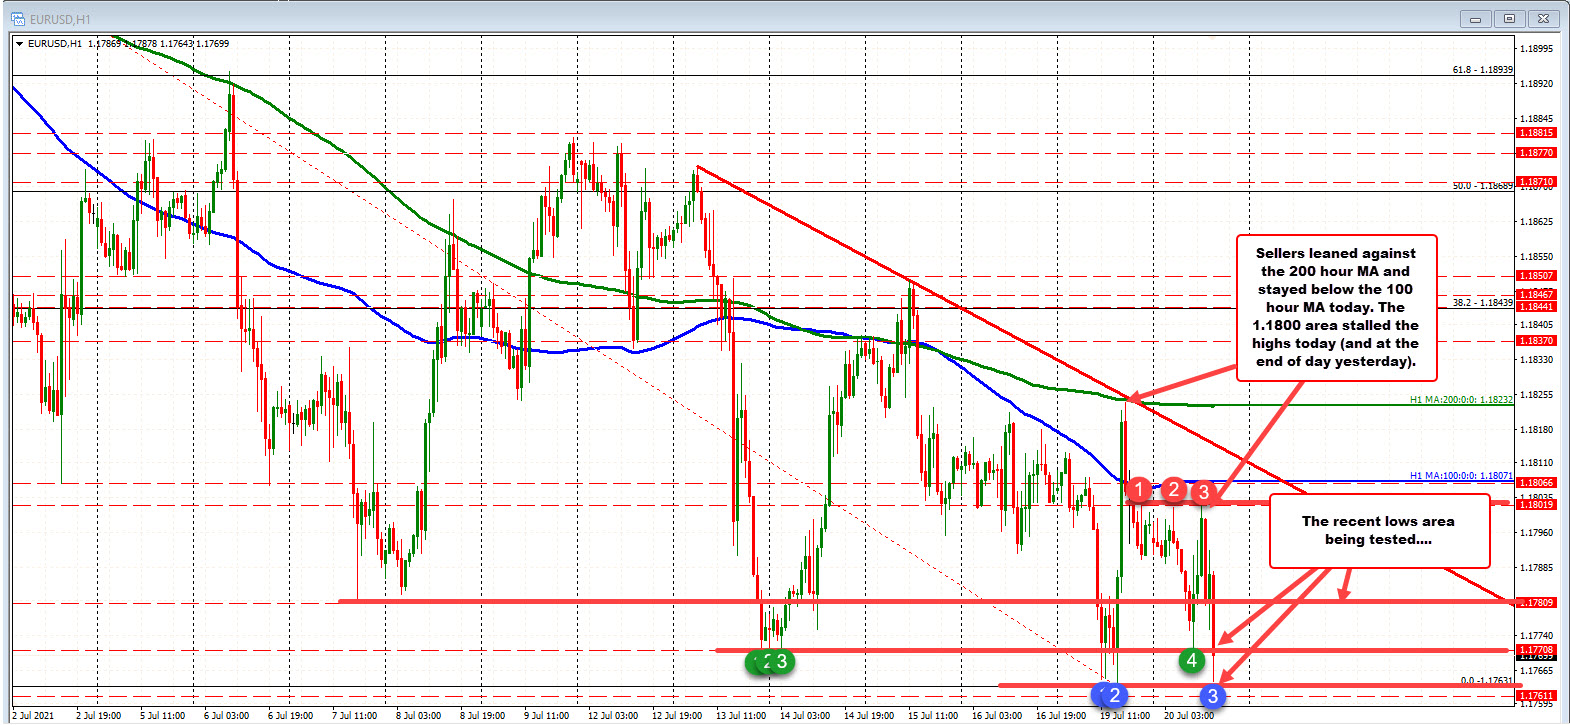 High for the day stalls near 1.1800 level (and below the 100 hour MA).